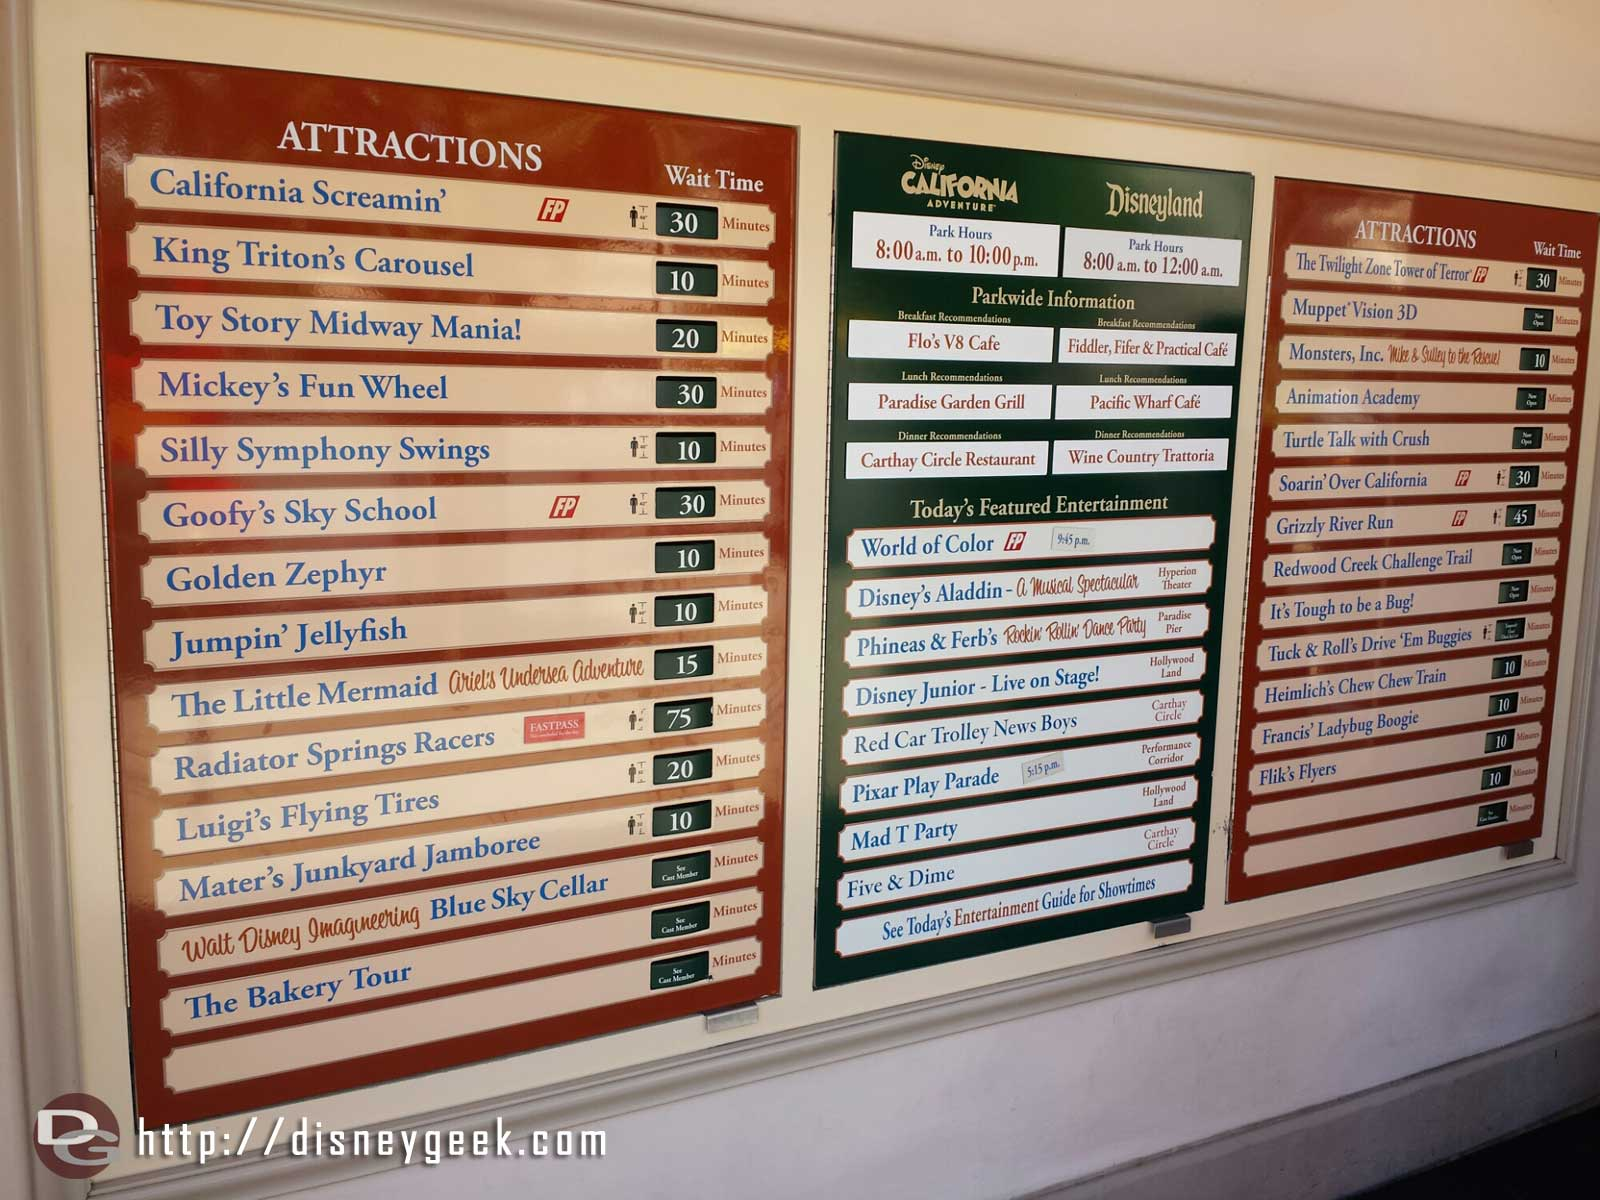 Disney California Adventure waits as of 1:18pm